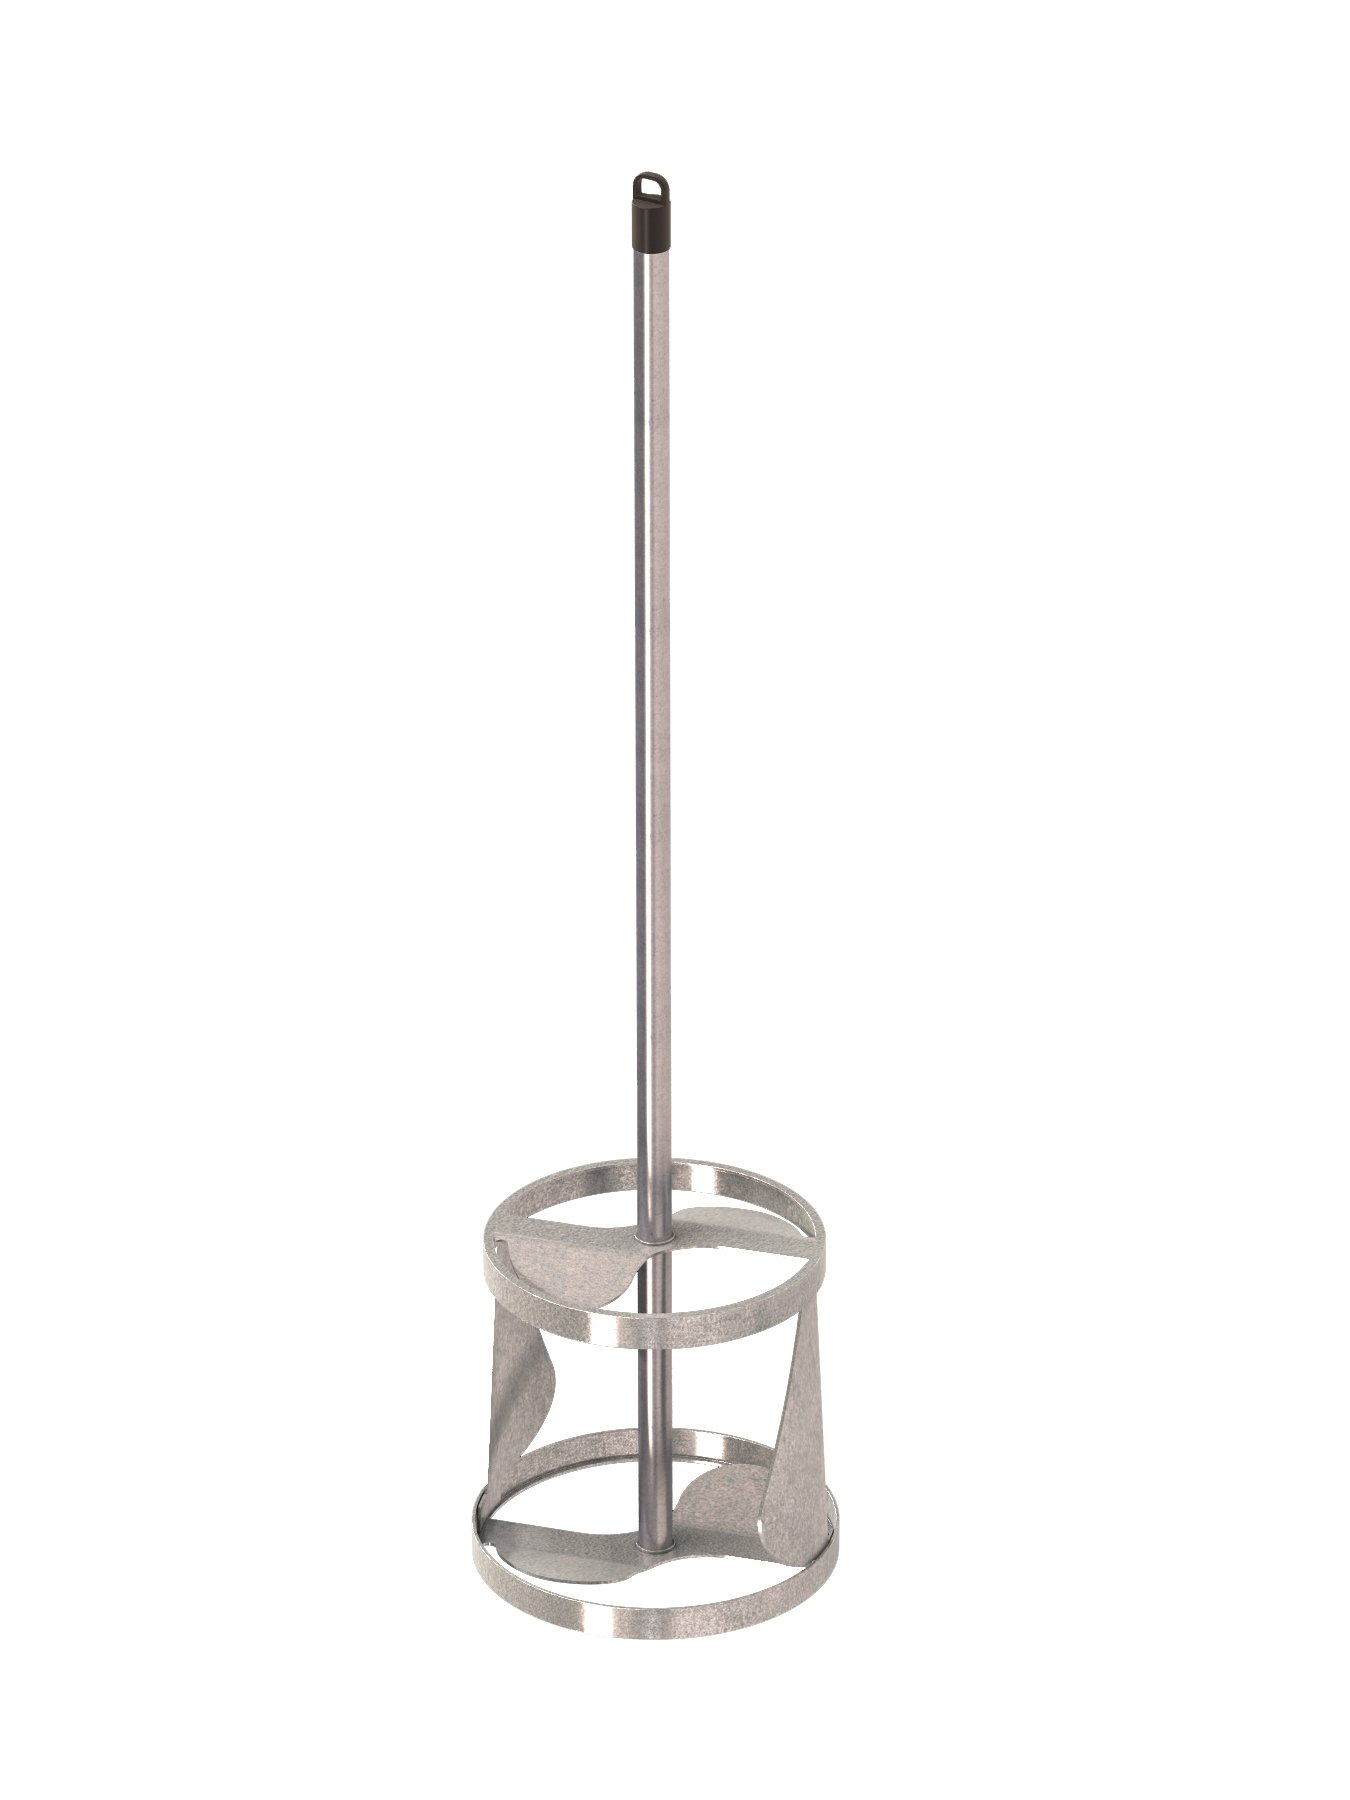 Bon 15-181 19-Inch by 5-Inch Stainless Steel Mud and Resin Mixer for 5-Gallon Container